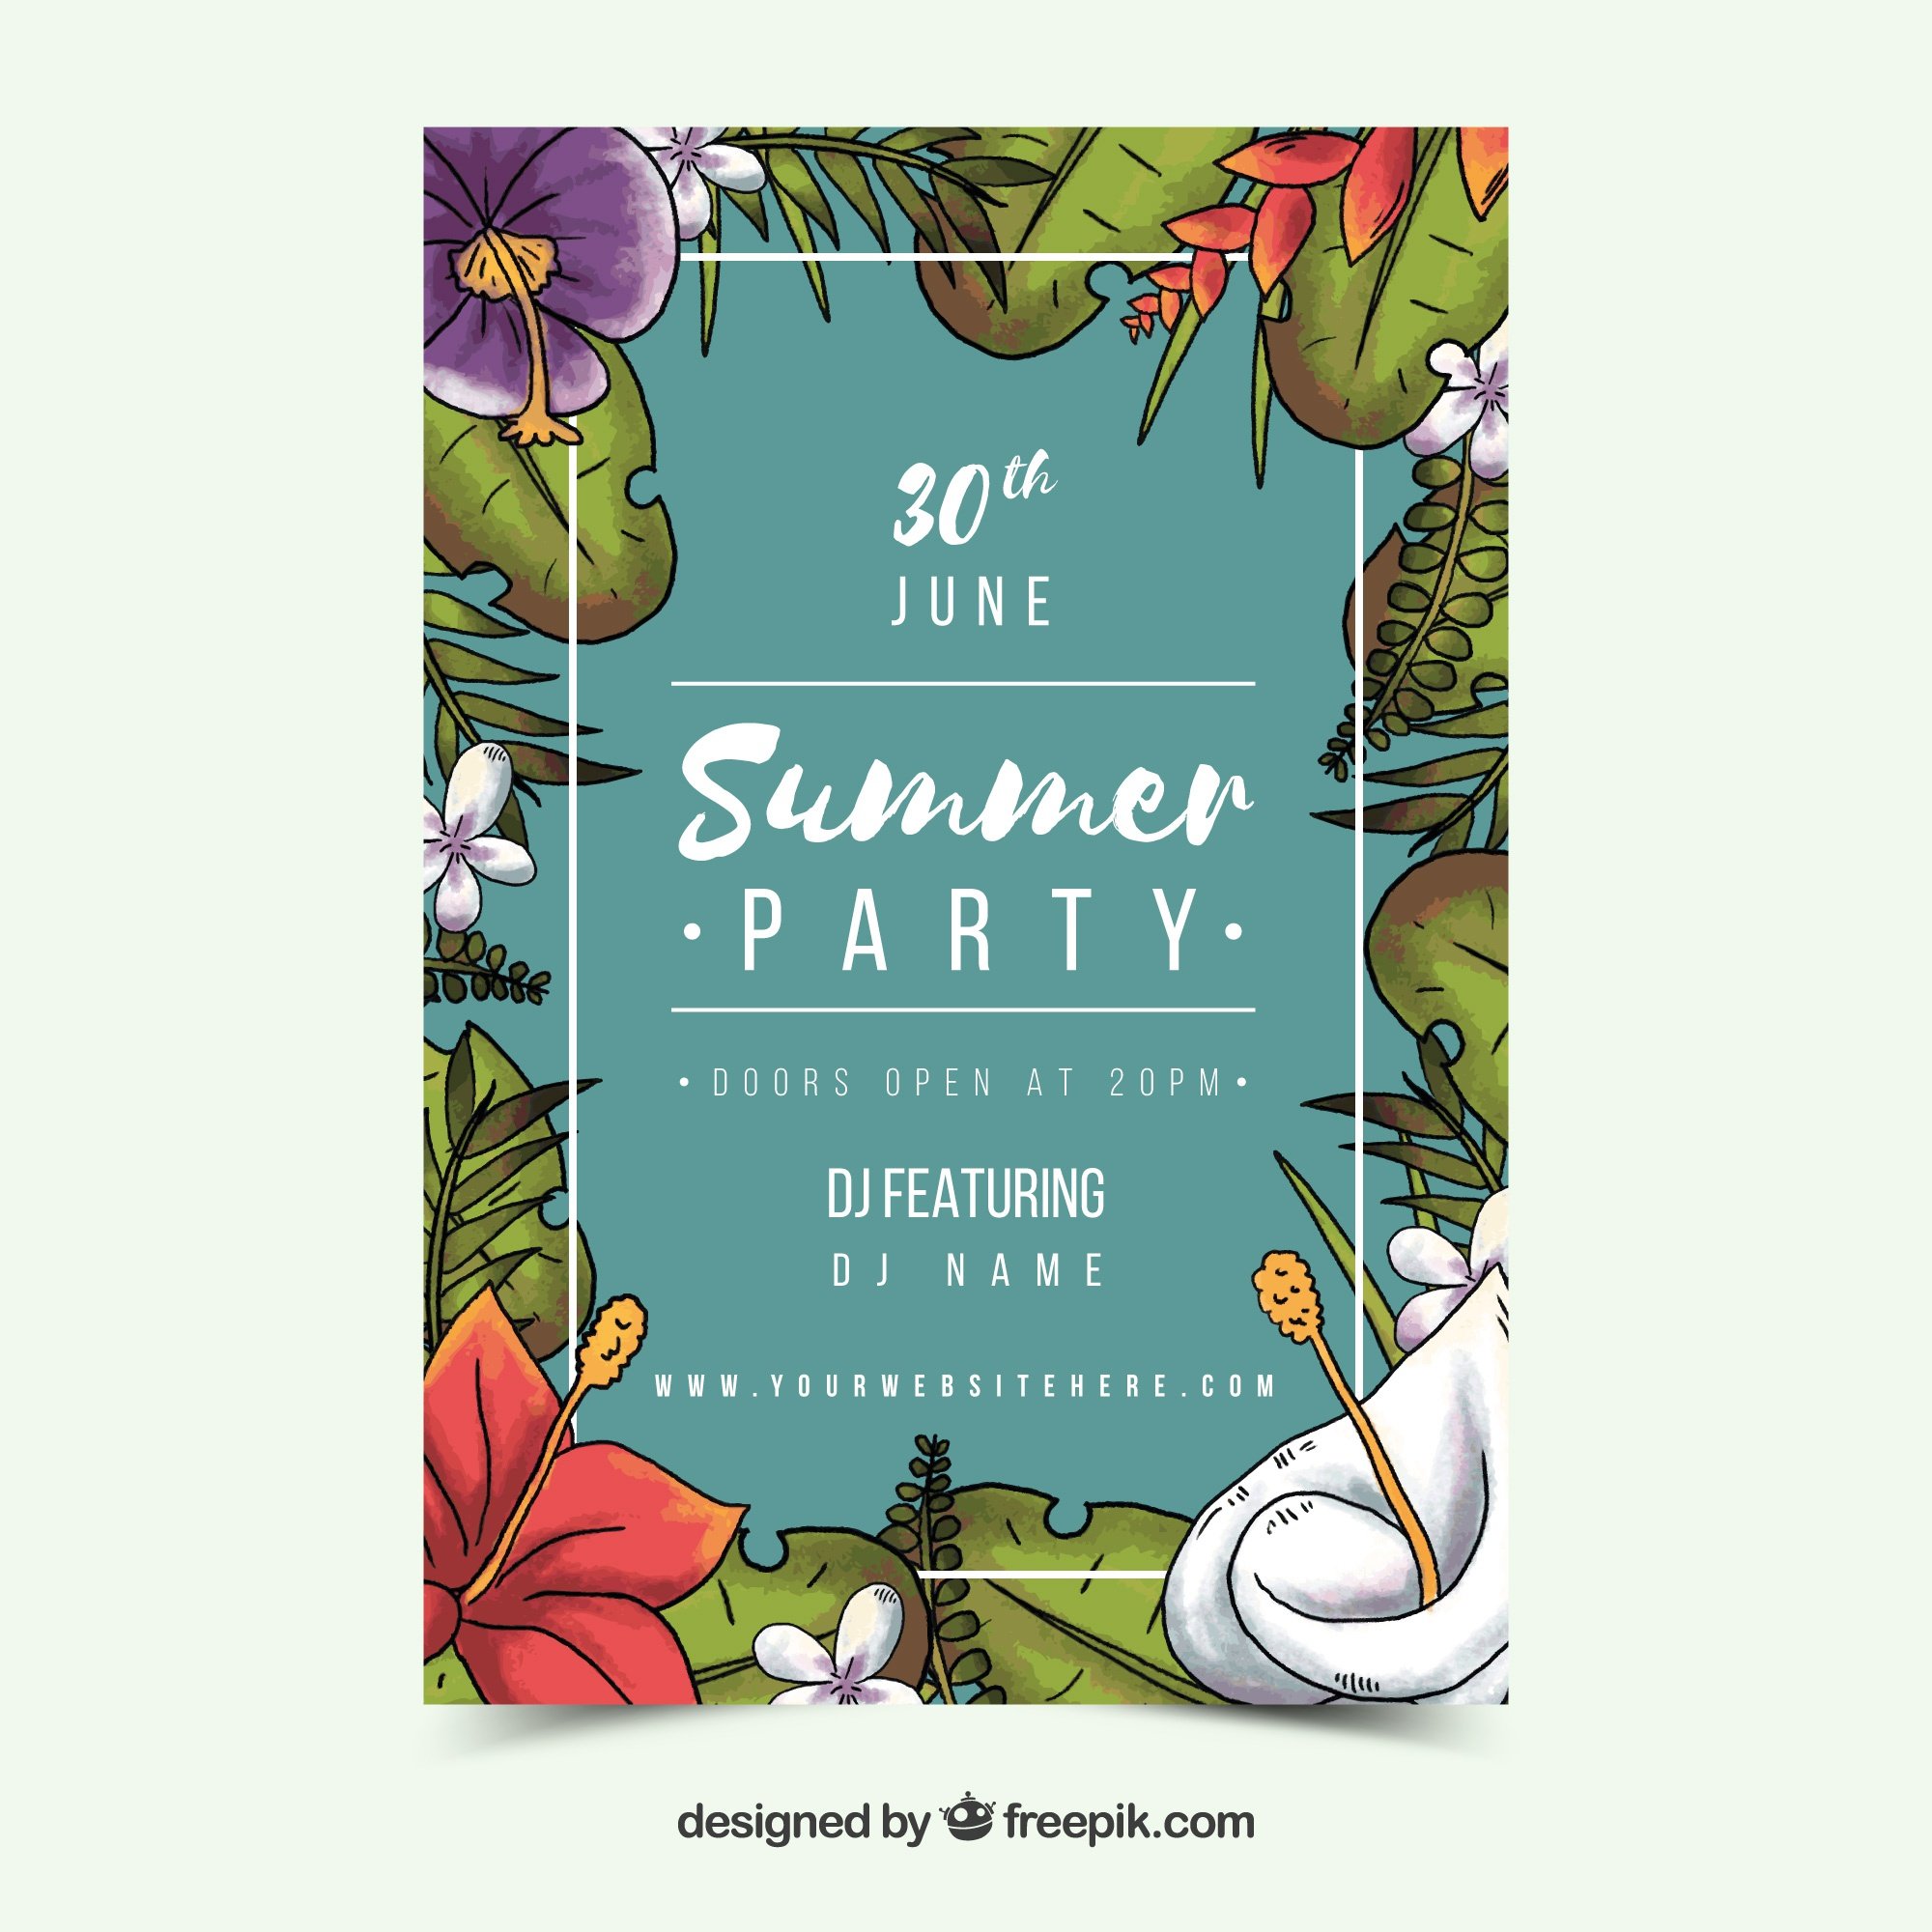 Summer party invitation in vintage style with leaves